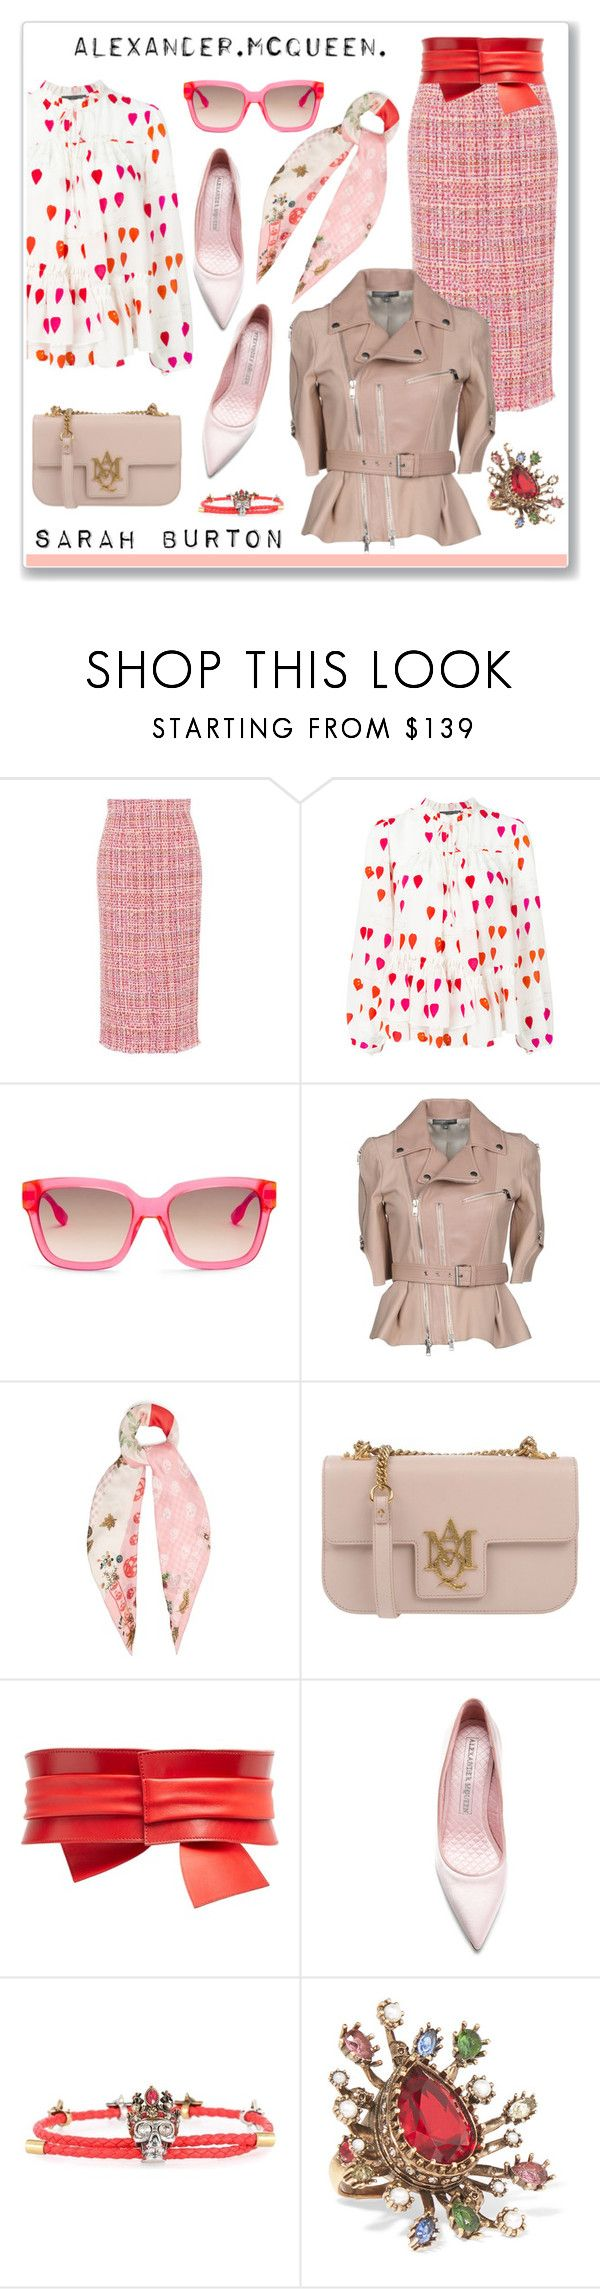 """Sarah Burton"" by hellodollface ❤ liked on Polyvore featuring Alexander McQueen, internationalwomensday, pressforprogress, FemaleDesigners and ByWomenForWomen"